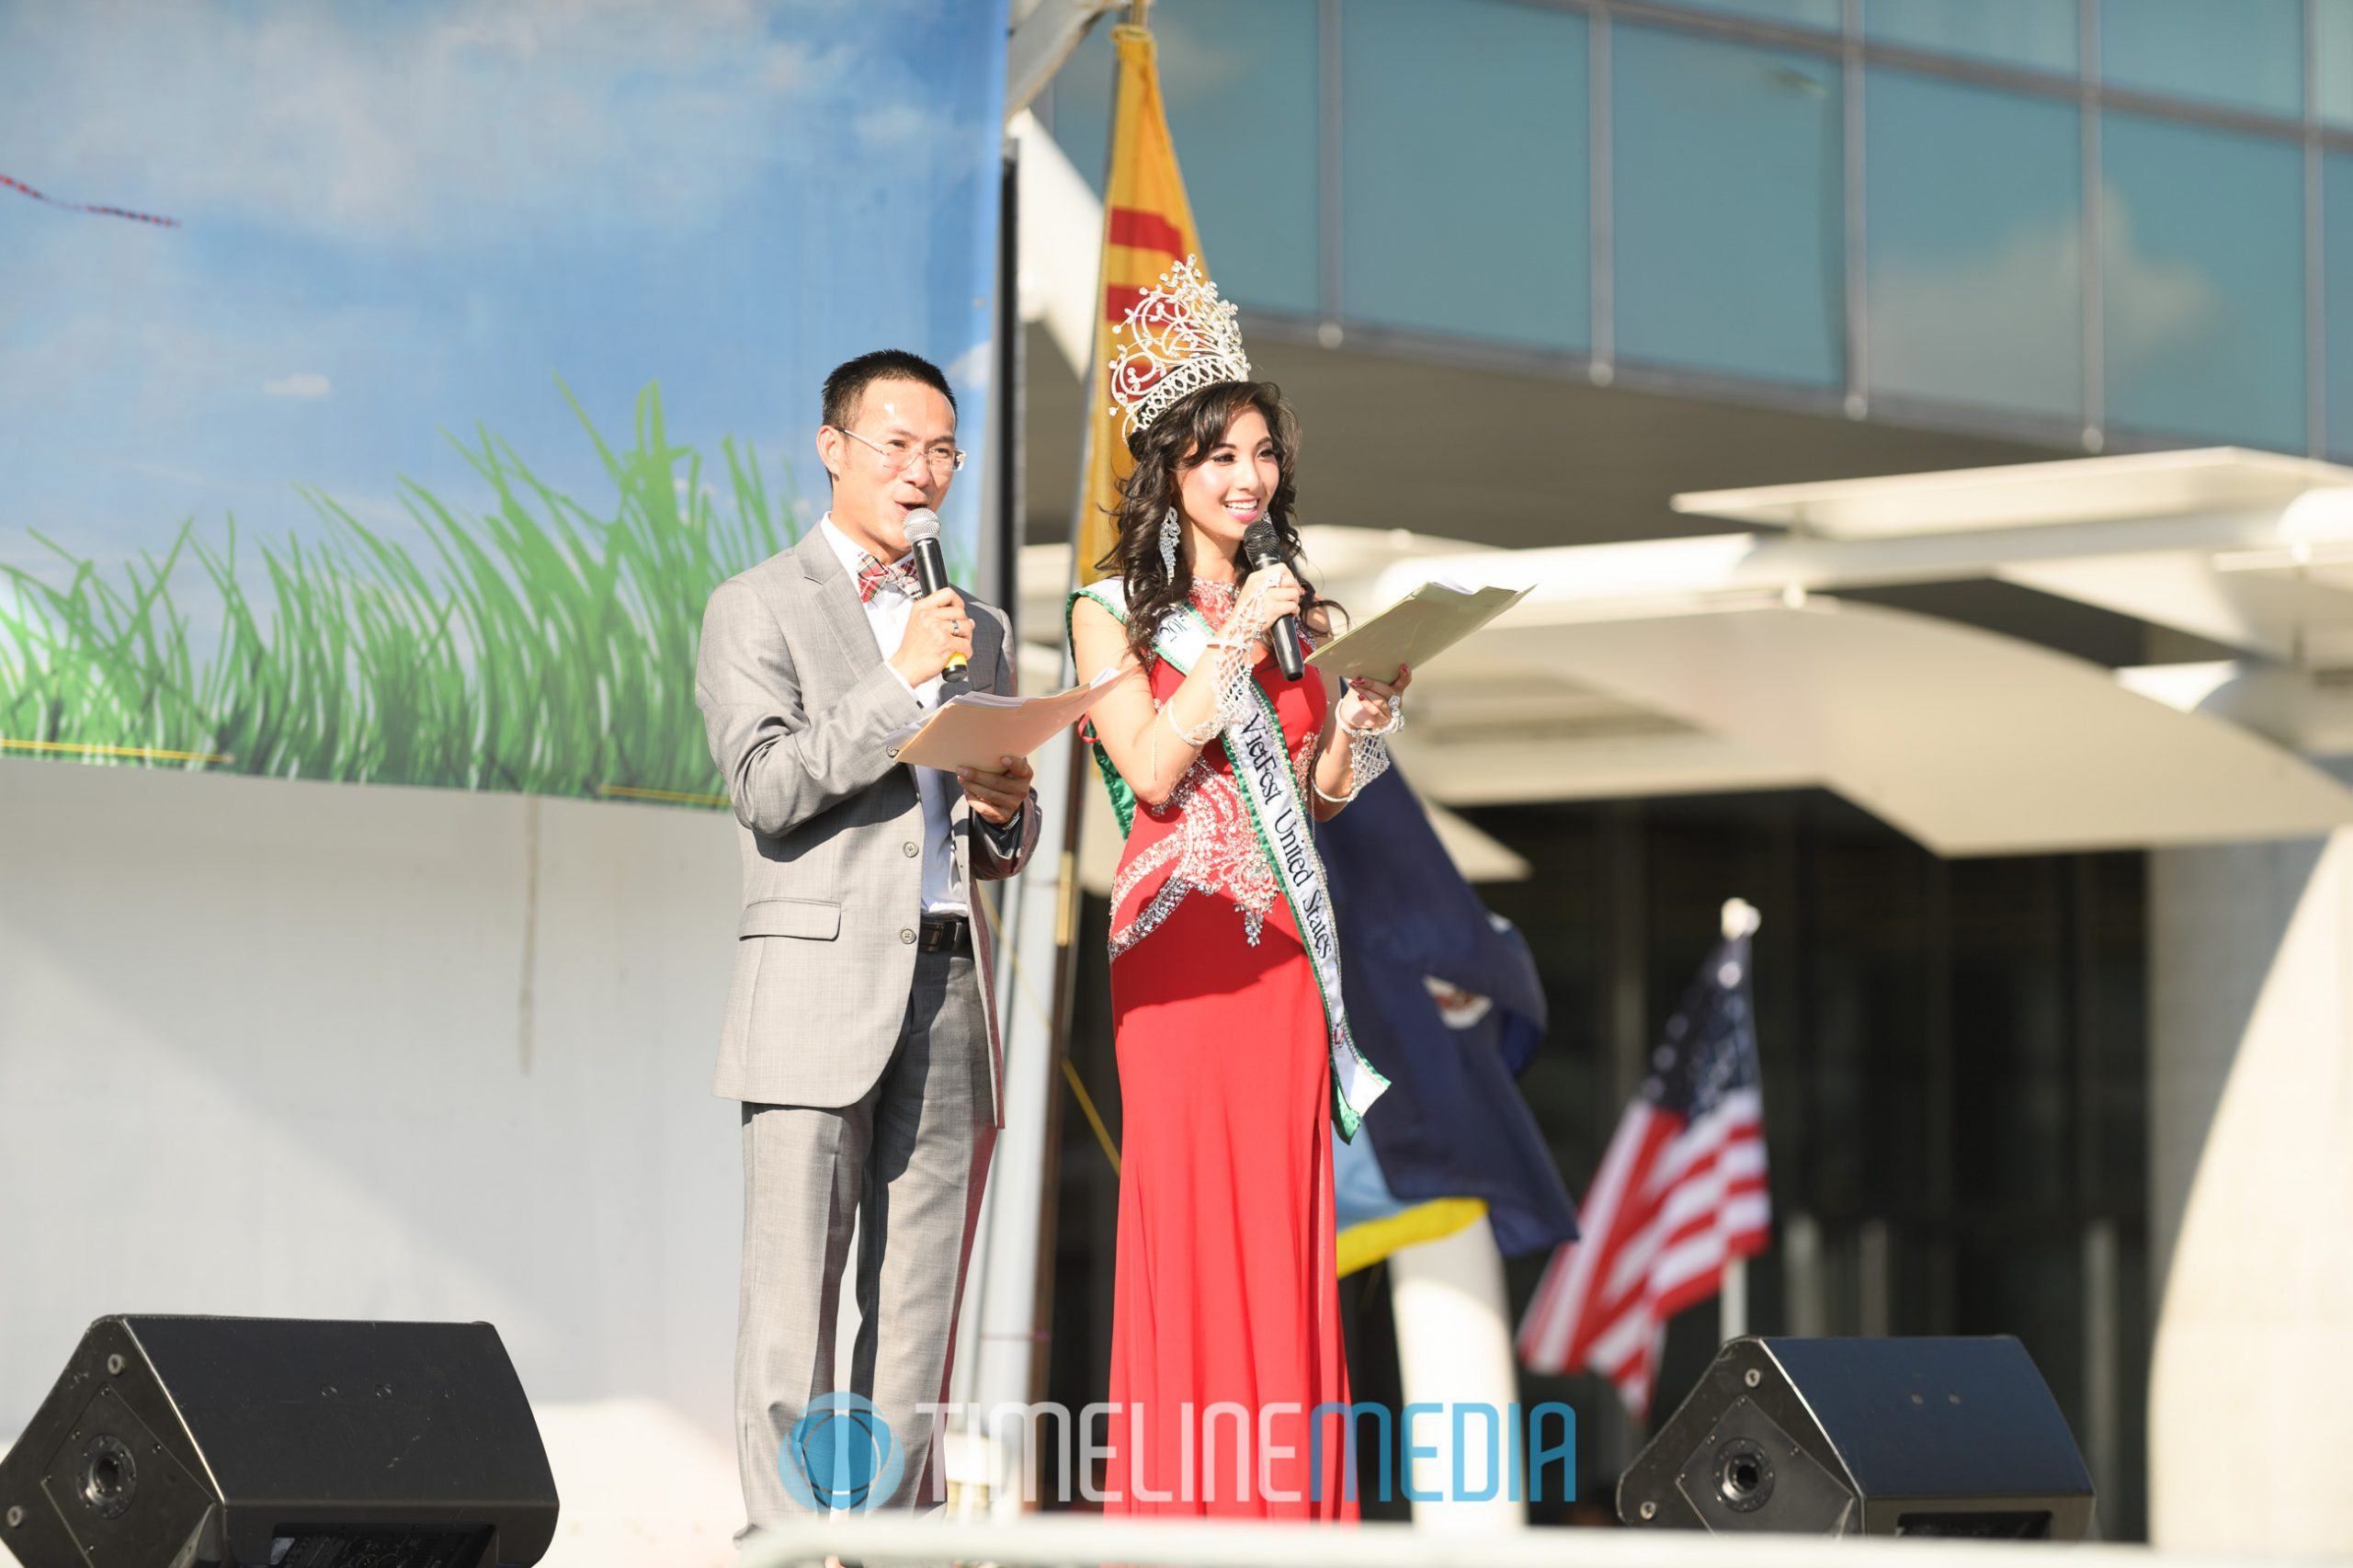 Ms. Vietfest emceeing a show at VietFest 2016 on the Plaza at Tysons Corner Center